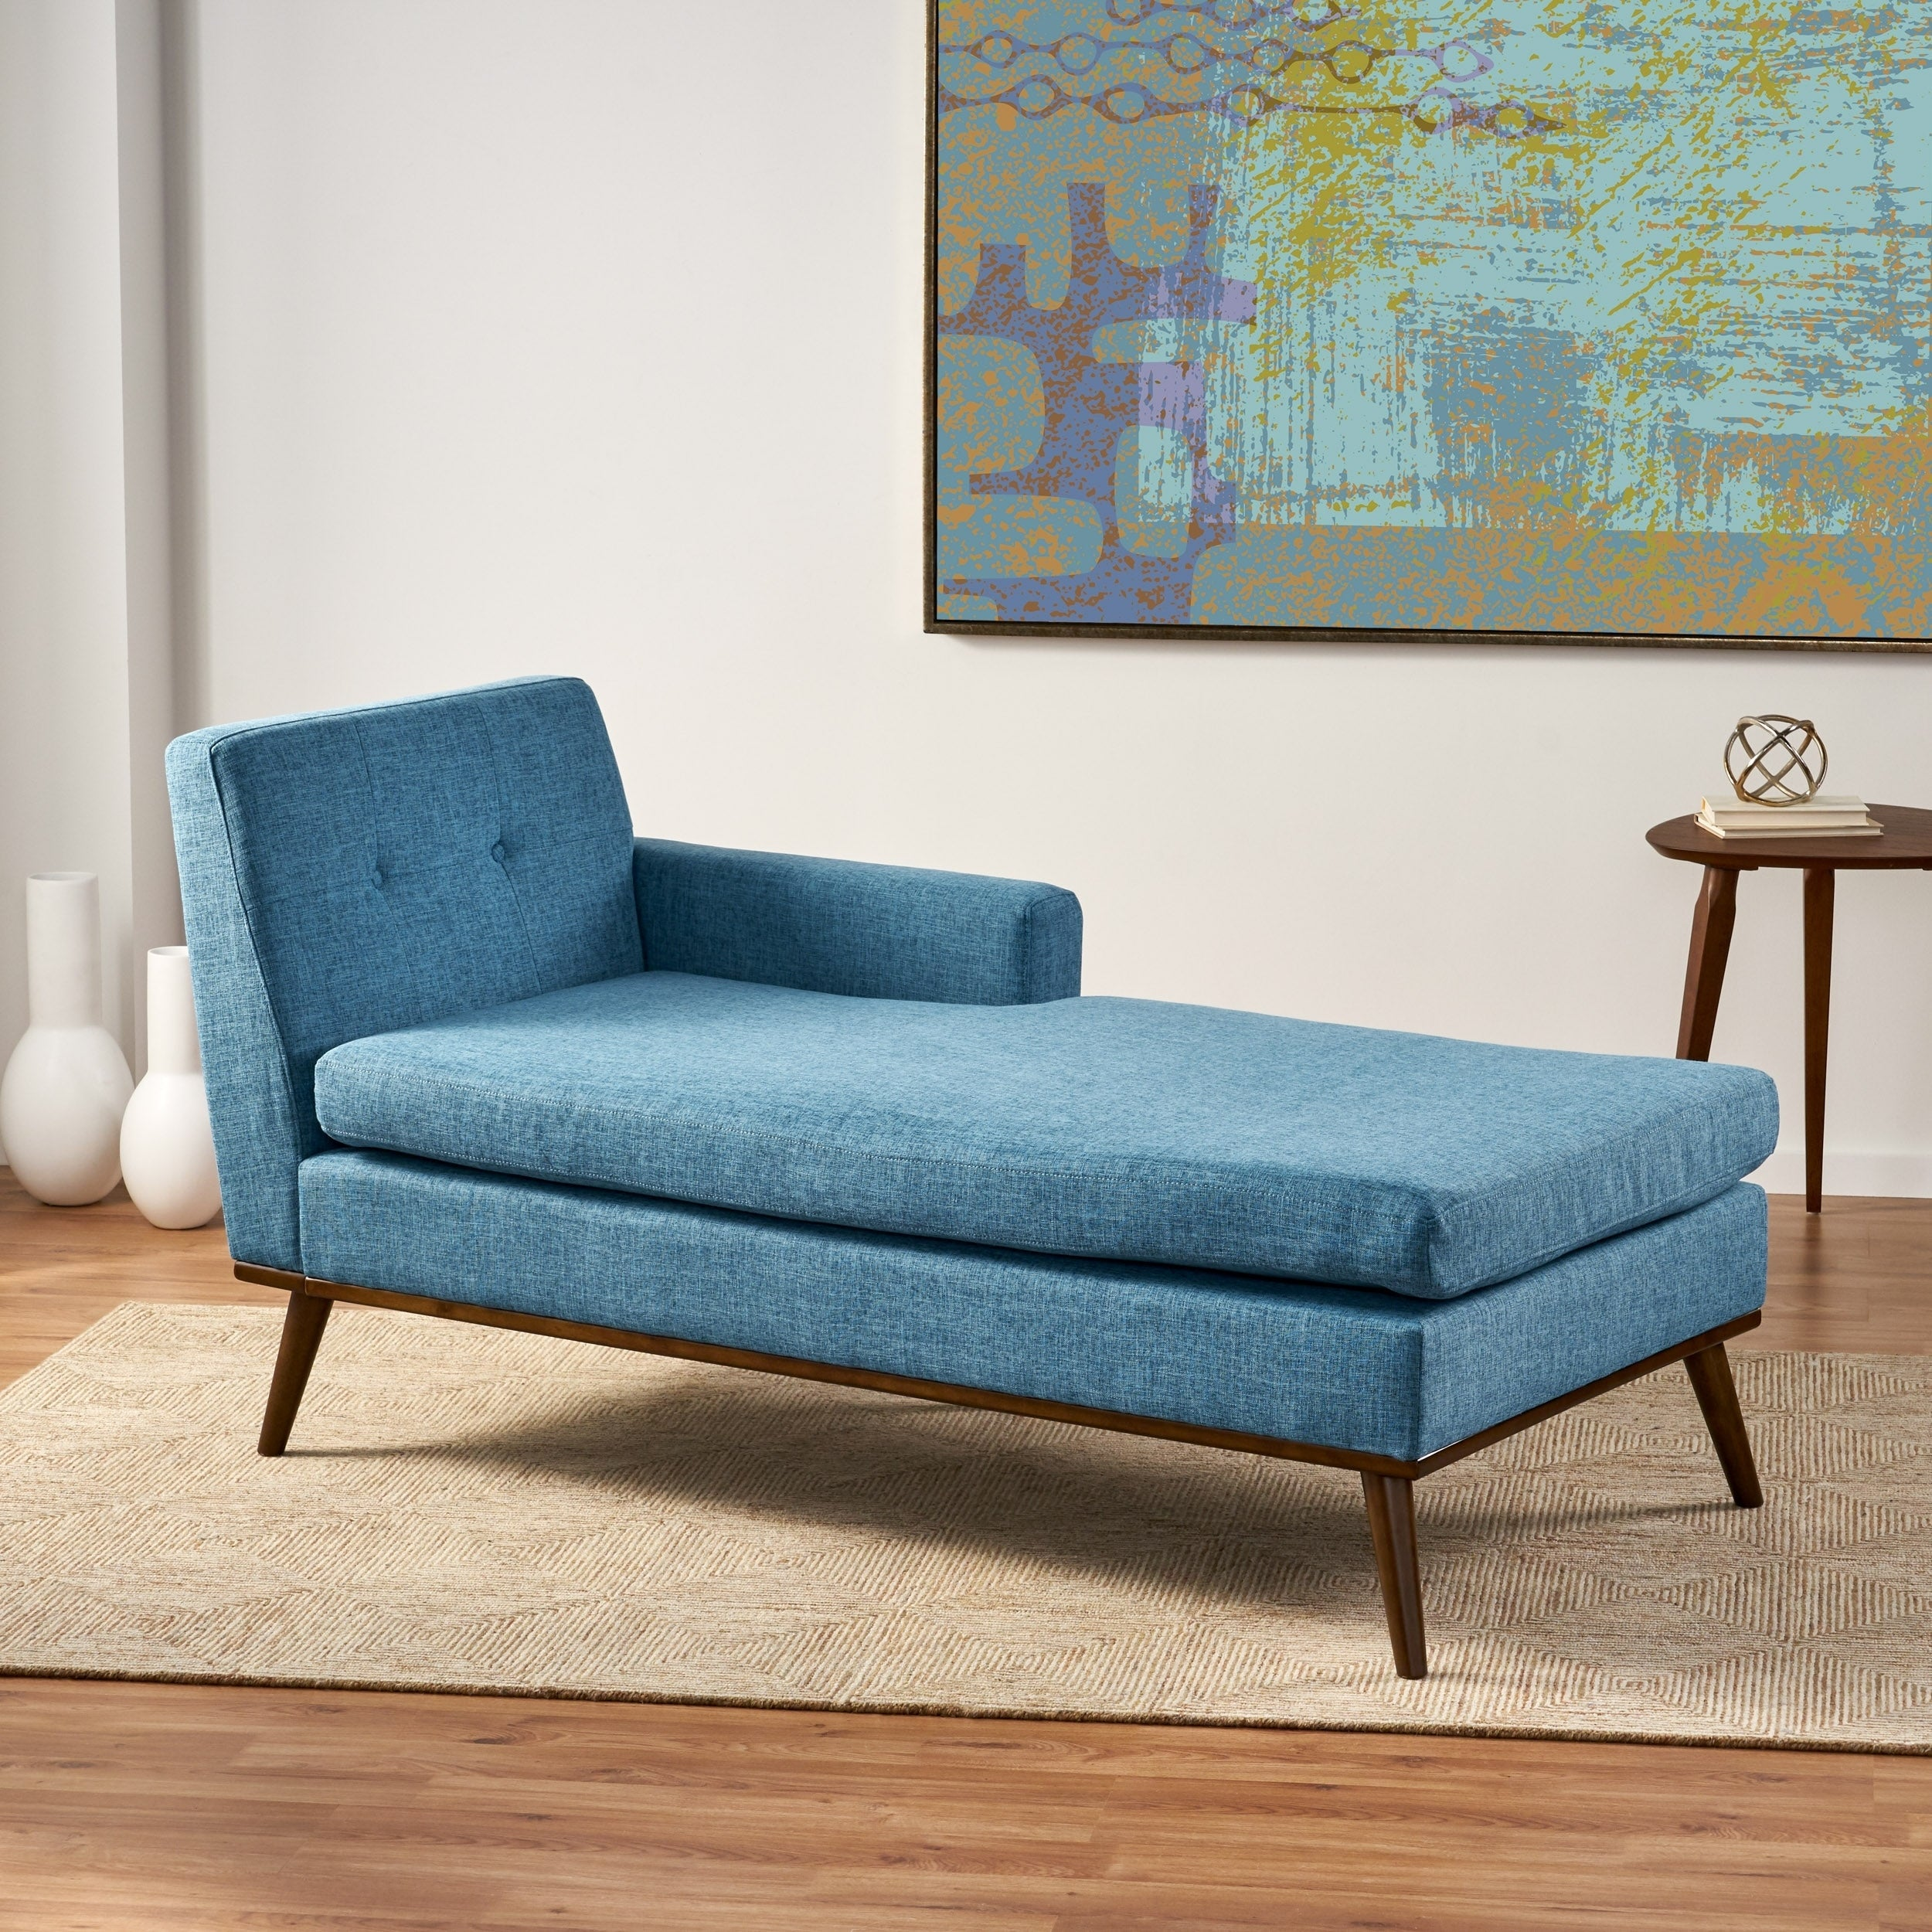 Shop Black Friday Deals On Stormi Mid Century Modern Tufted Chaise Lounge By Christopher Knight Home On Sale Overstock 27543982 Red Walnut